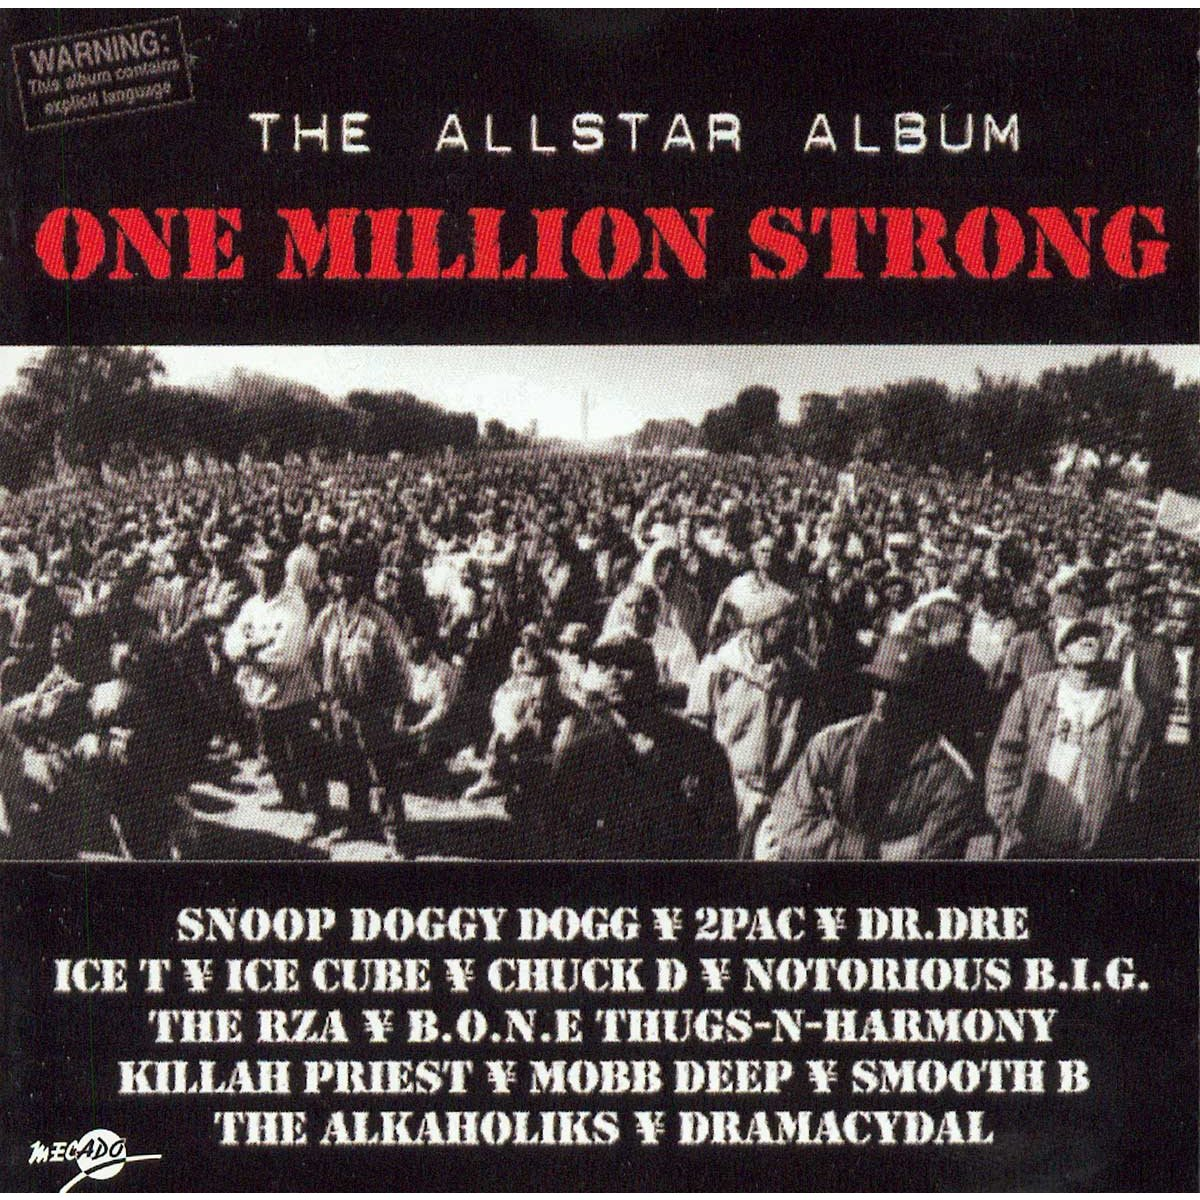 One Million Strong is a 1995 compilation of hip-hop music released by SOLAR Records to commemorate the 1995 Million Man March in Washington, D.C.